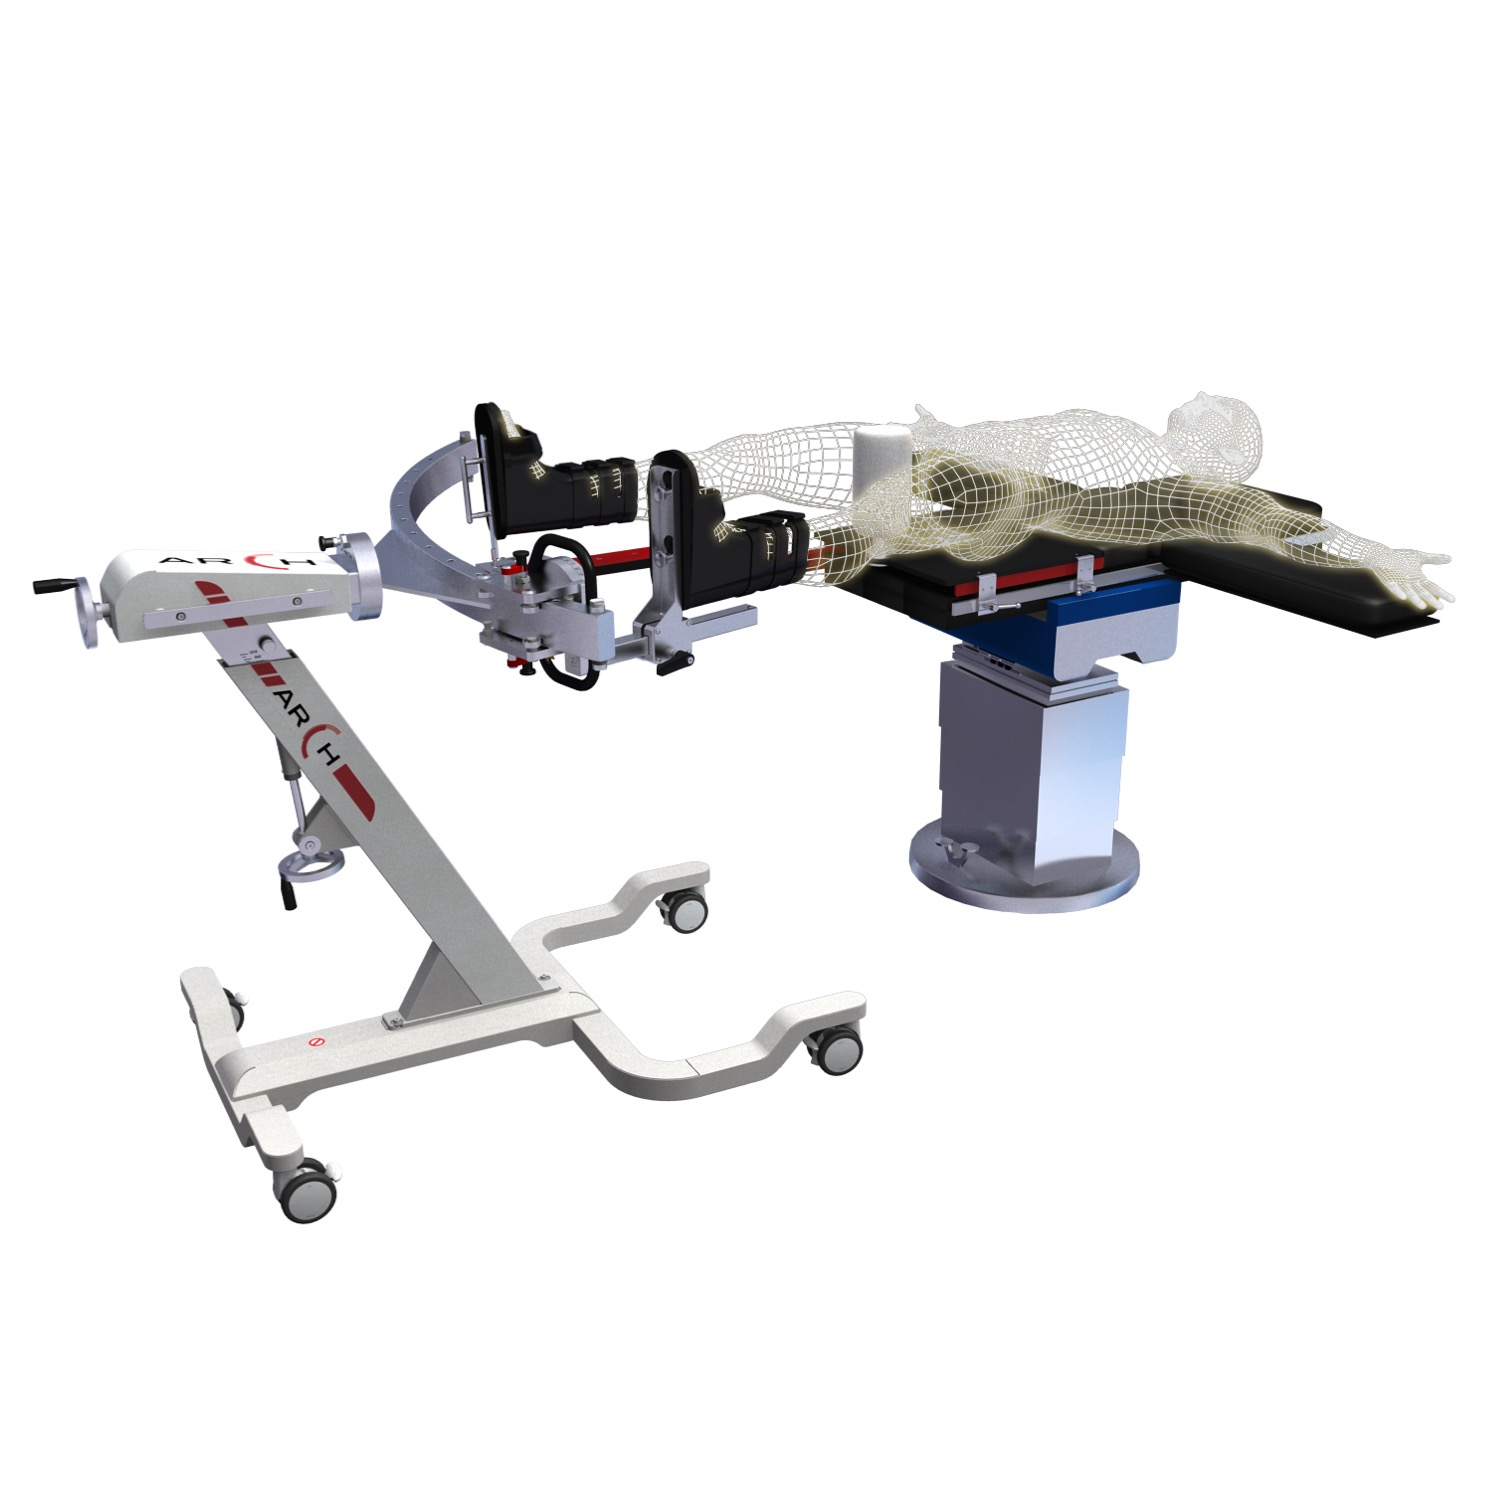 In the model above, the ARCH table is shown setup for femoral fractures. In this configuration, the C-Arm has plenty of room to maneuver around the device and general surgery table, allowing for x-ray visualization from almost all sides.